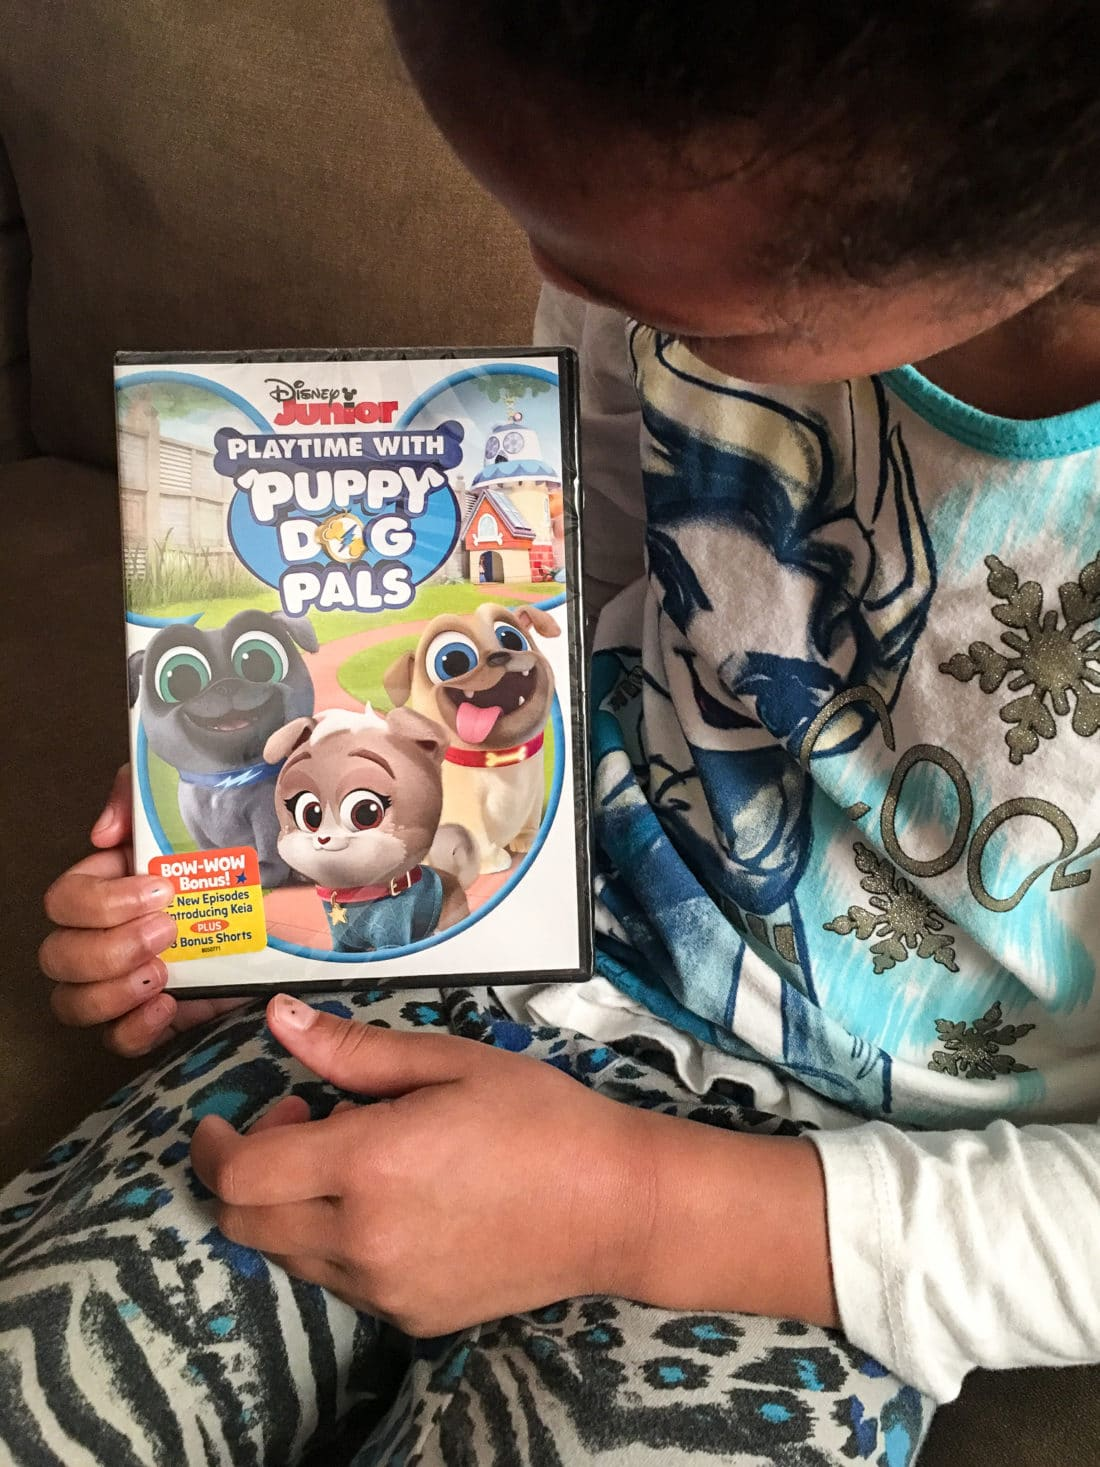 DIsney Junior Playtime With Puppy Dog Plays DVD Esuun Holding.. Adorable puppy brothers Bingo and Rolly are back! Join the doggy duo on amazing missions in their newest Playtime with Puppy Dog Pals DVD.